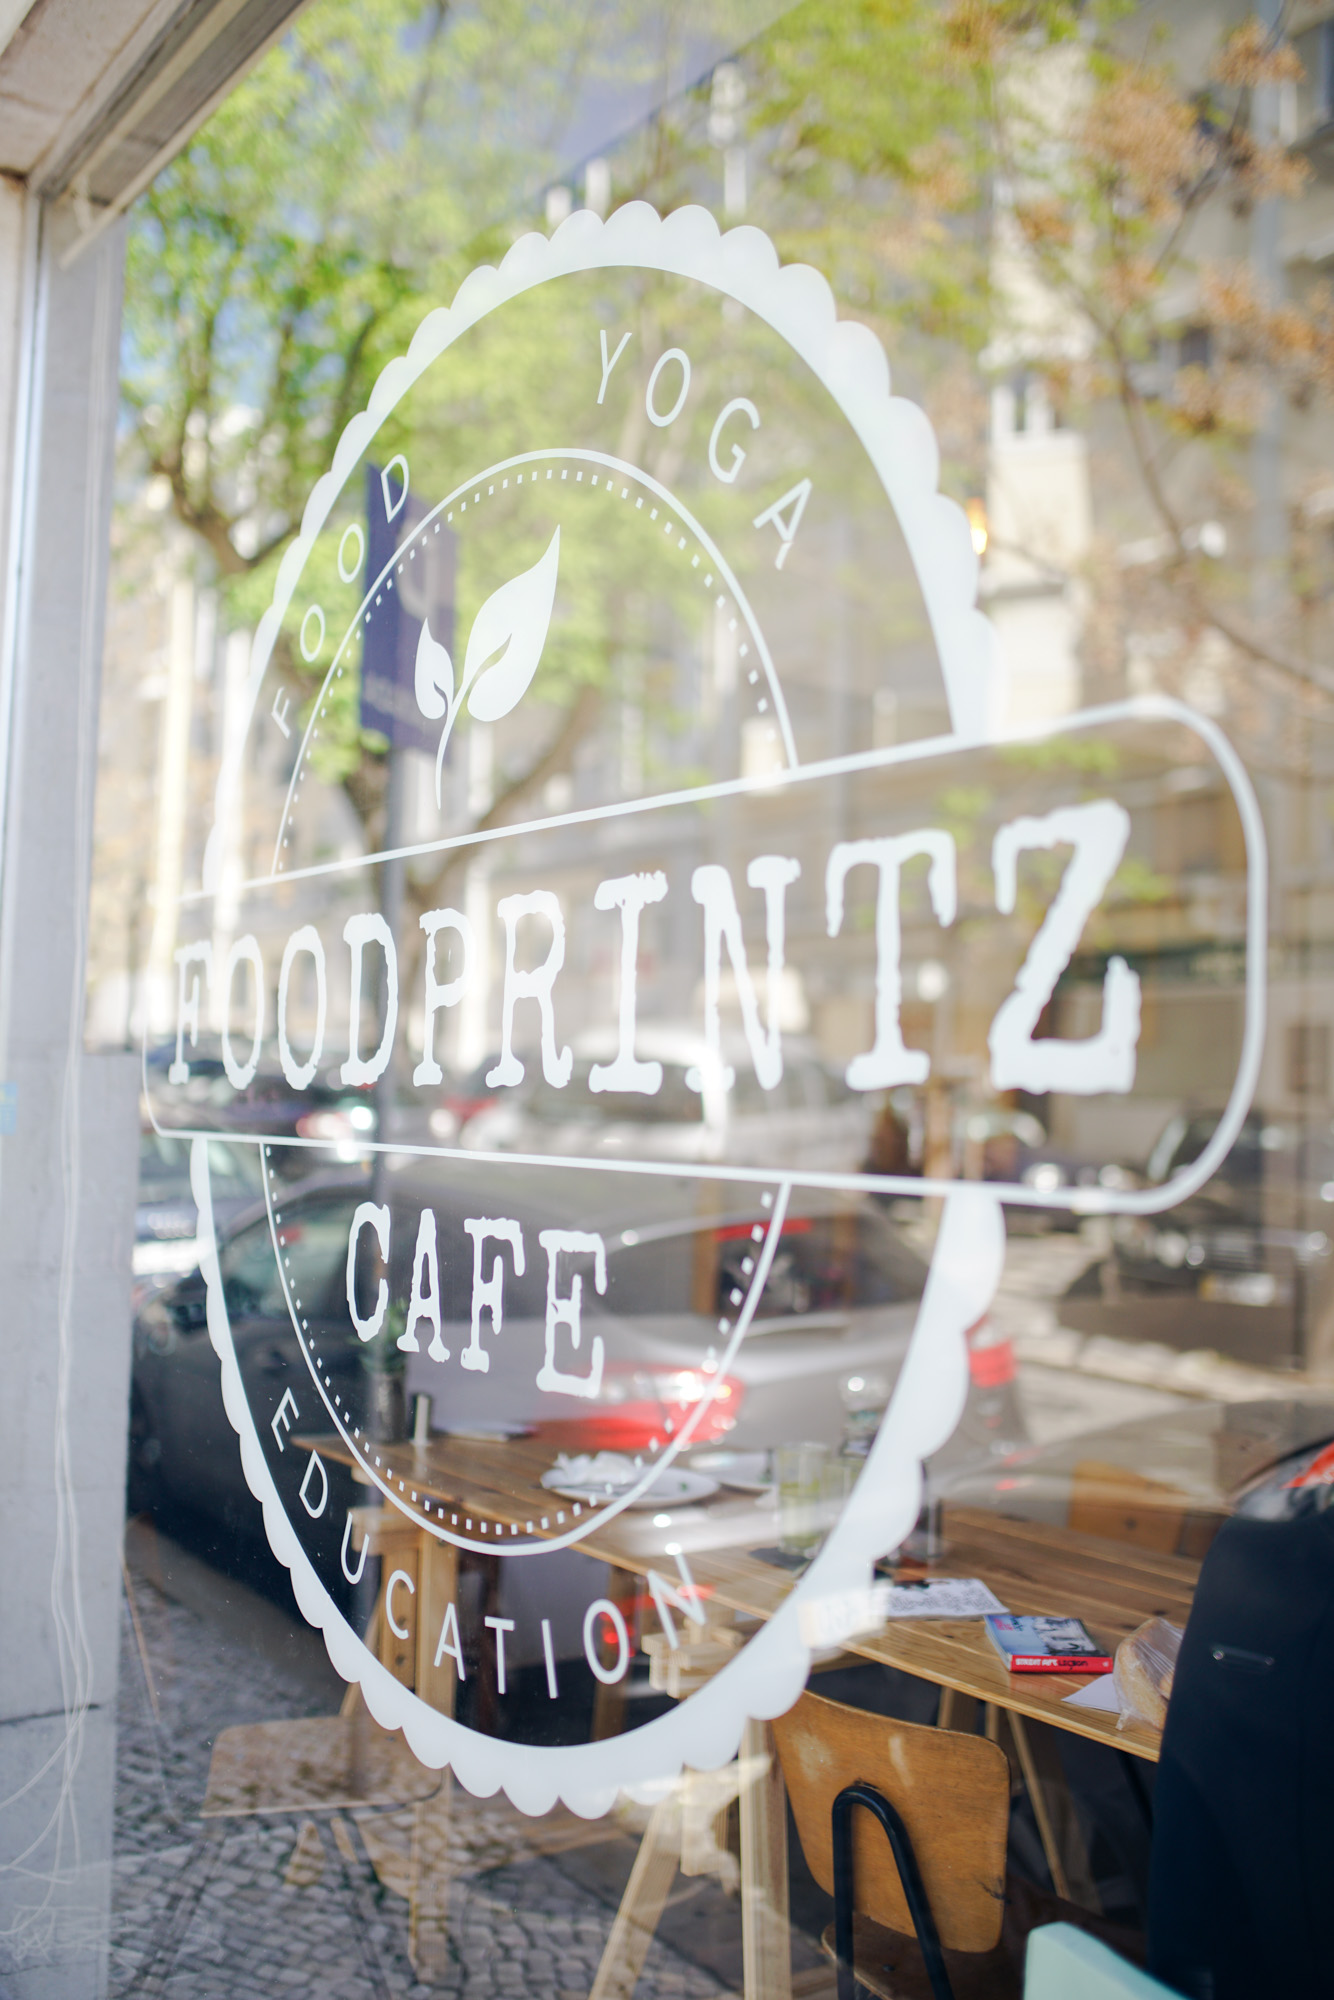 FoodPrintz - beats half a tomato by a country mile.